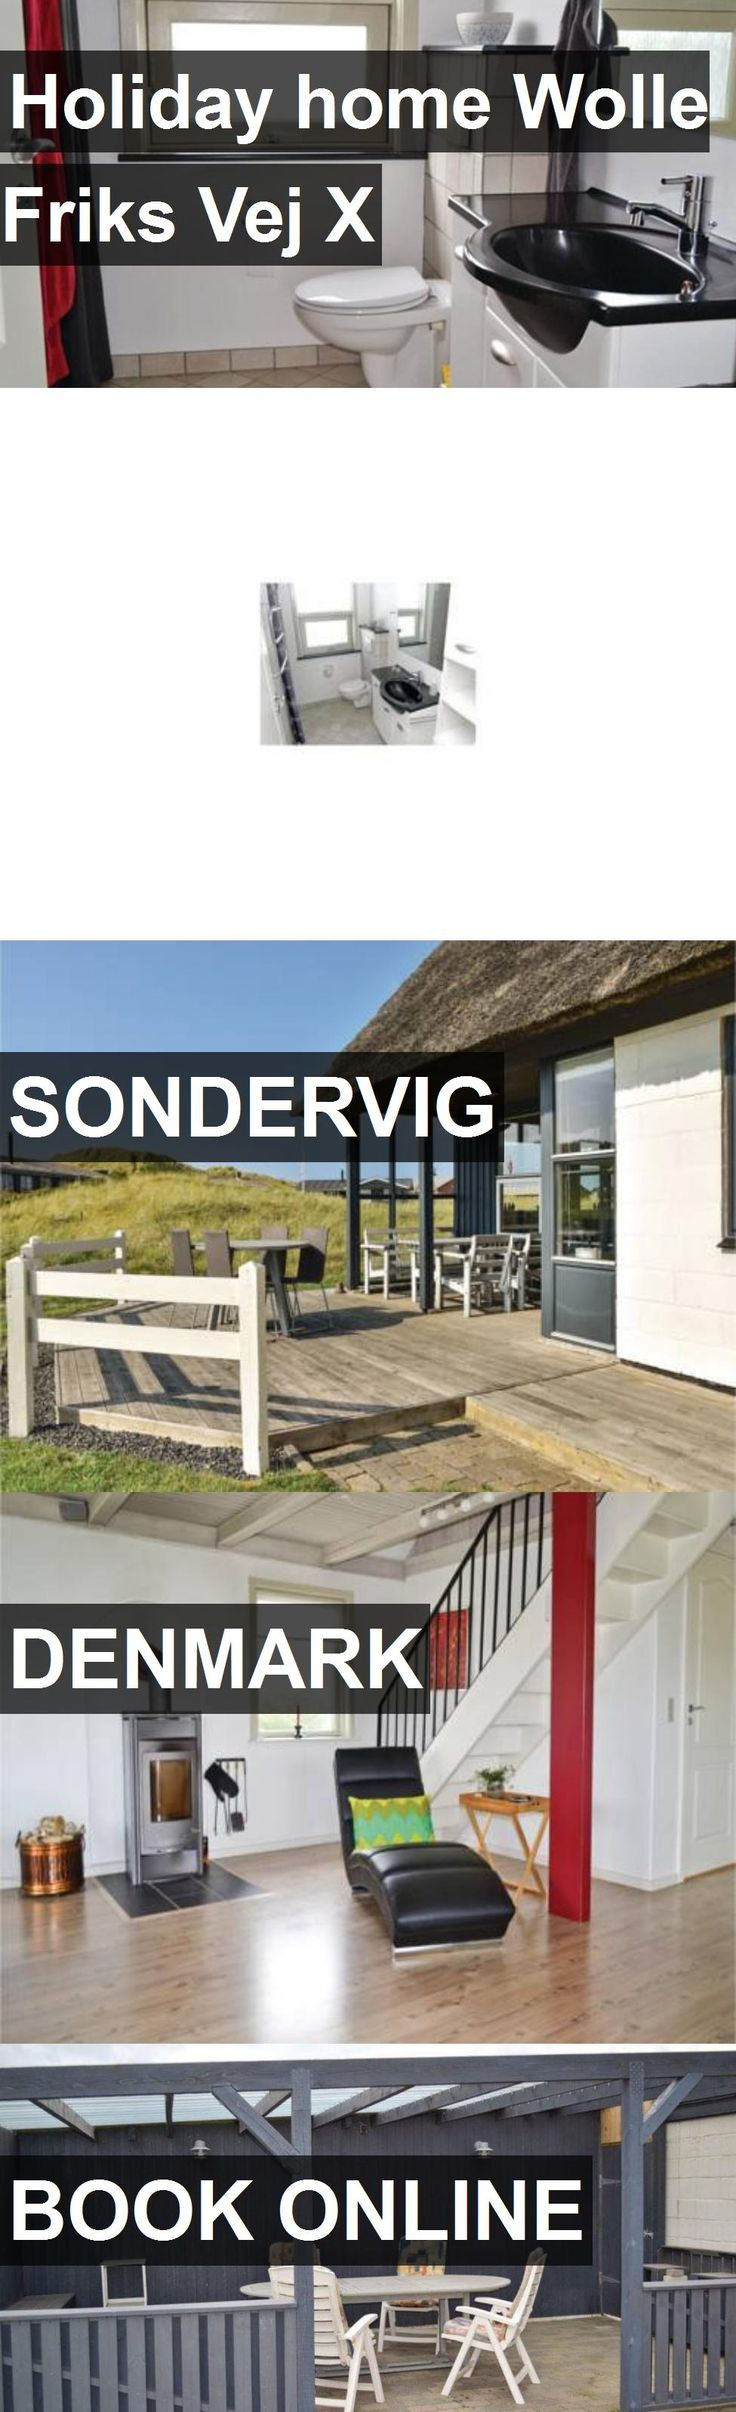 Hotel Holiday home Wolle Friks Vej X in Sondervig, Denmark. For more information, photos, reviews and best prices please follow the link. #Denmark #Sondervig #travel #vacation #hotel